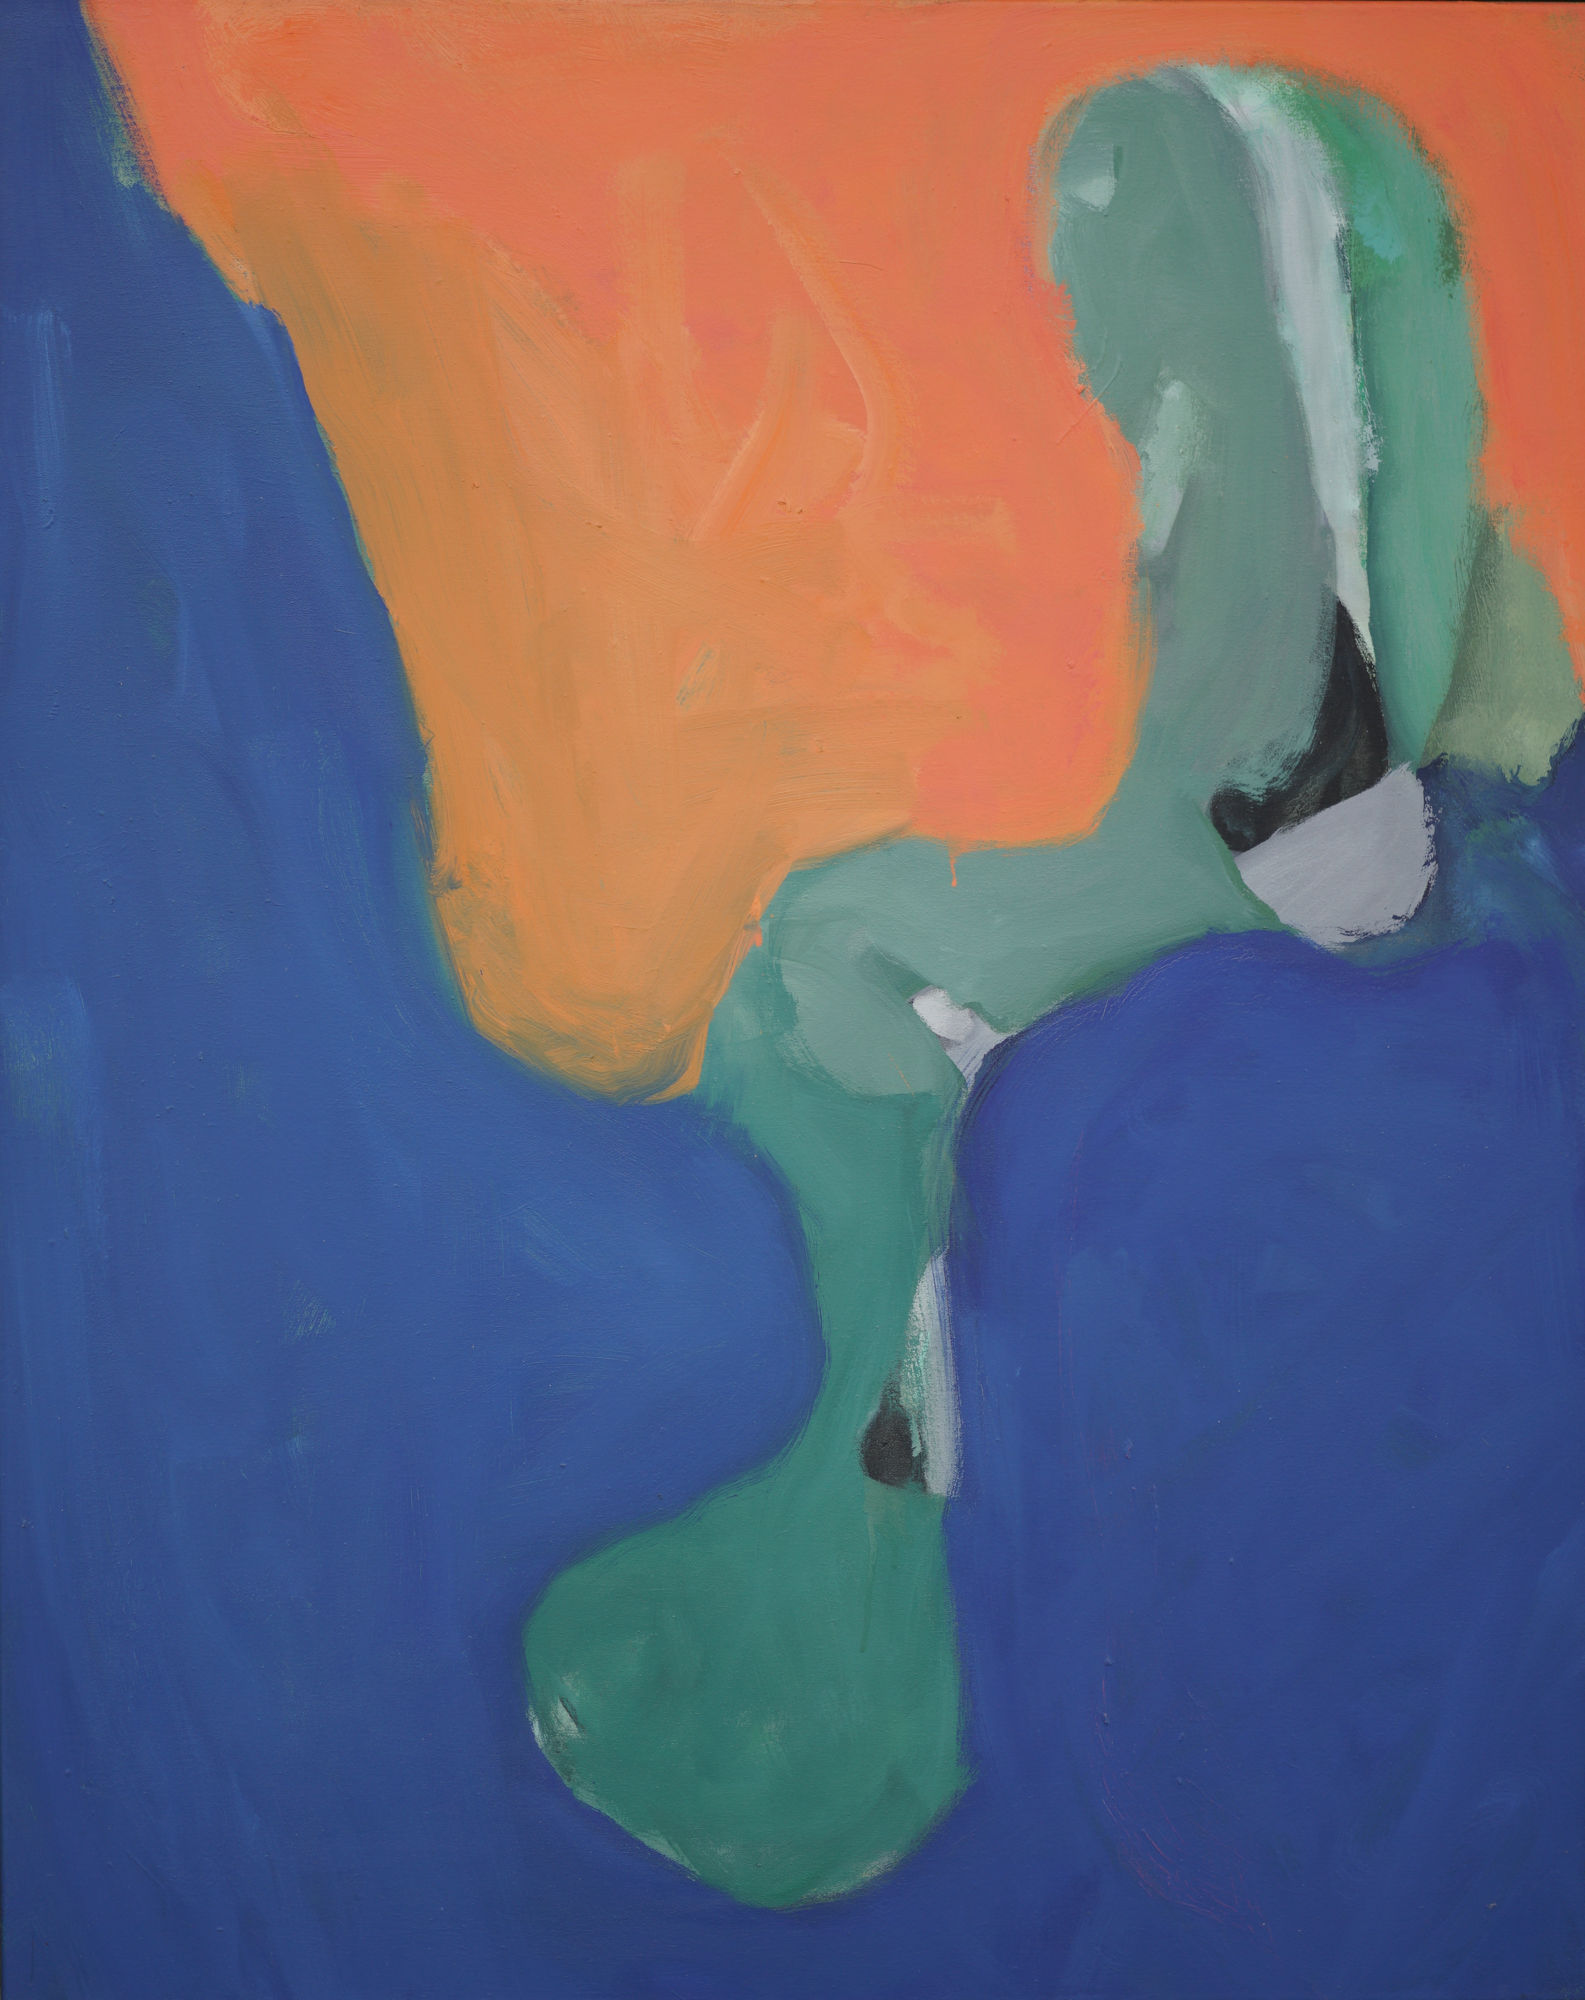 Somyot Hananuntasuk,  2013_05 , 2013, Oil on Canvas, 100 x 80 cm, Affinity Art.jpg